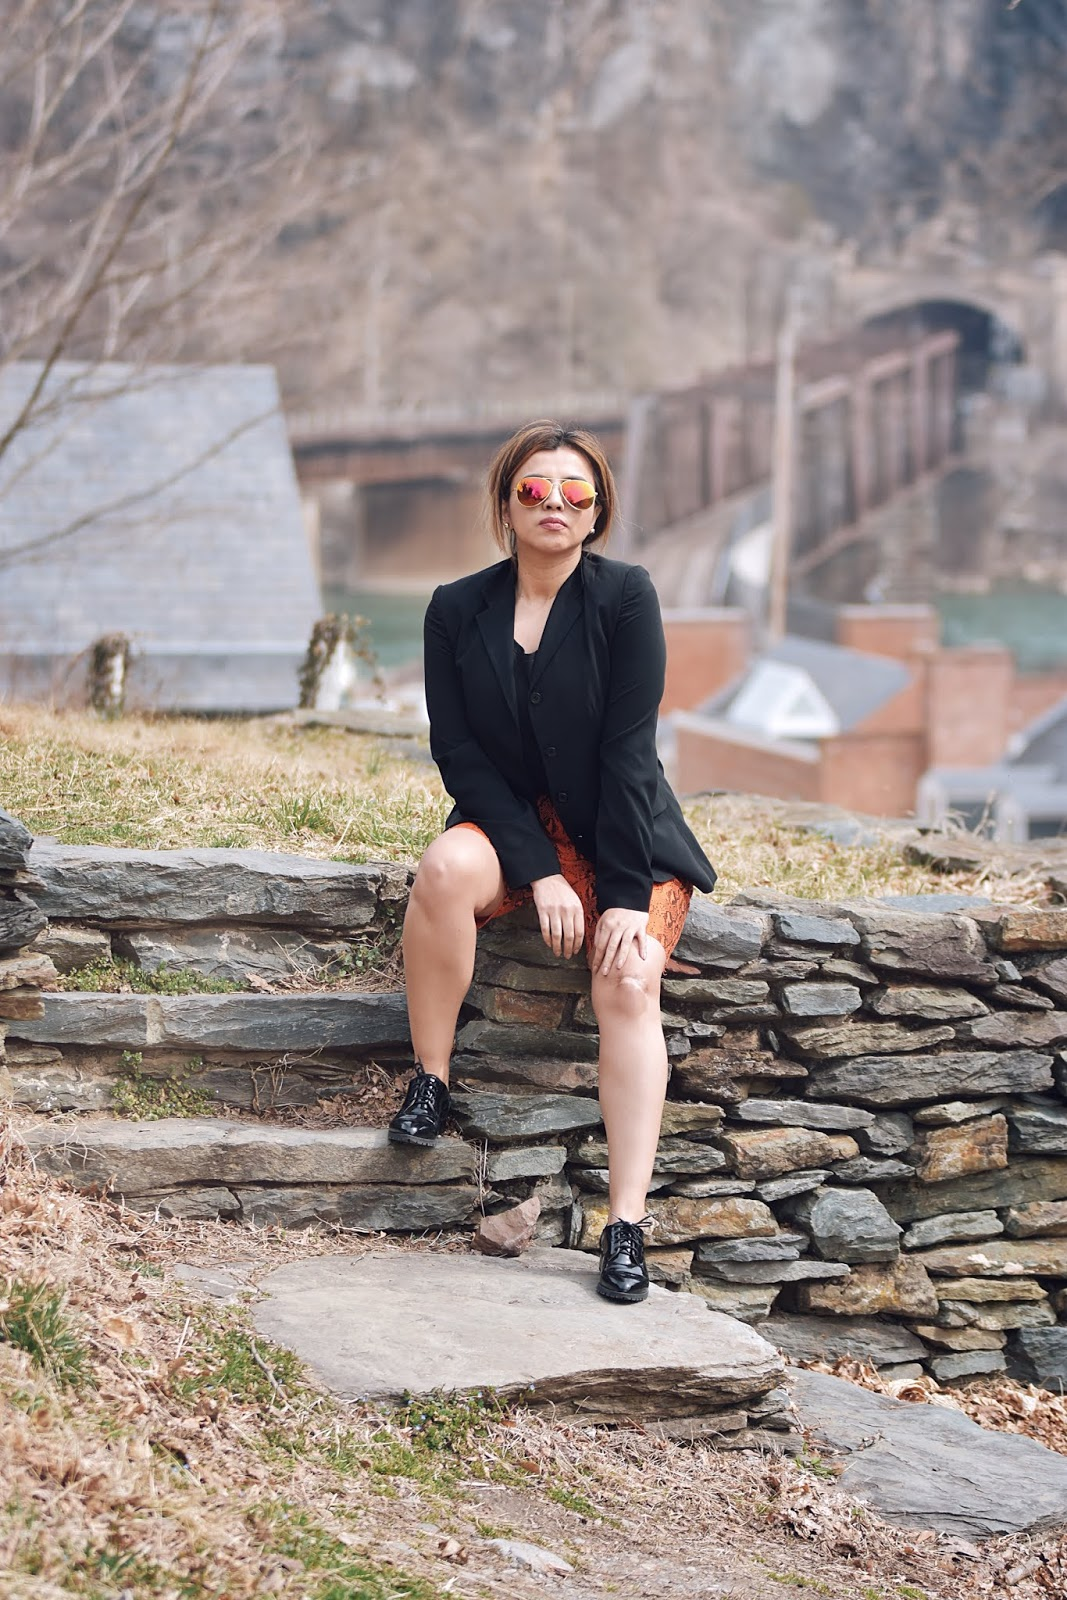 Tres Tendencias En Una Sola Prenda-MariEstilo-SheIn-Fashion Blogger-Travel blogger-traveller-west virginia-harpersferry-roadtrip-blogger style-snake print-tendencias 2019-